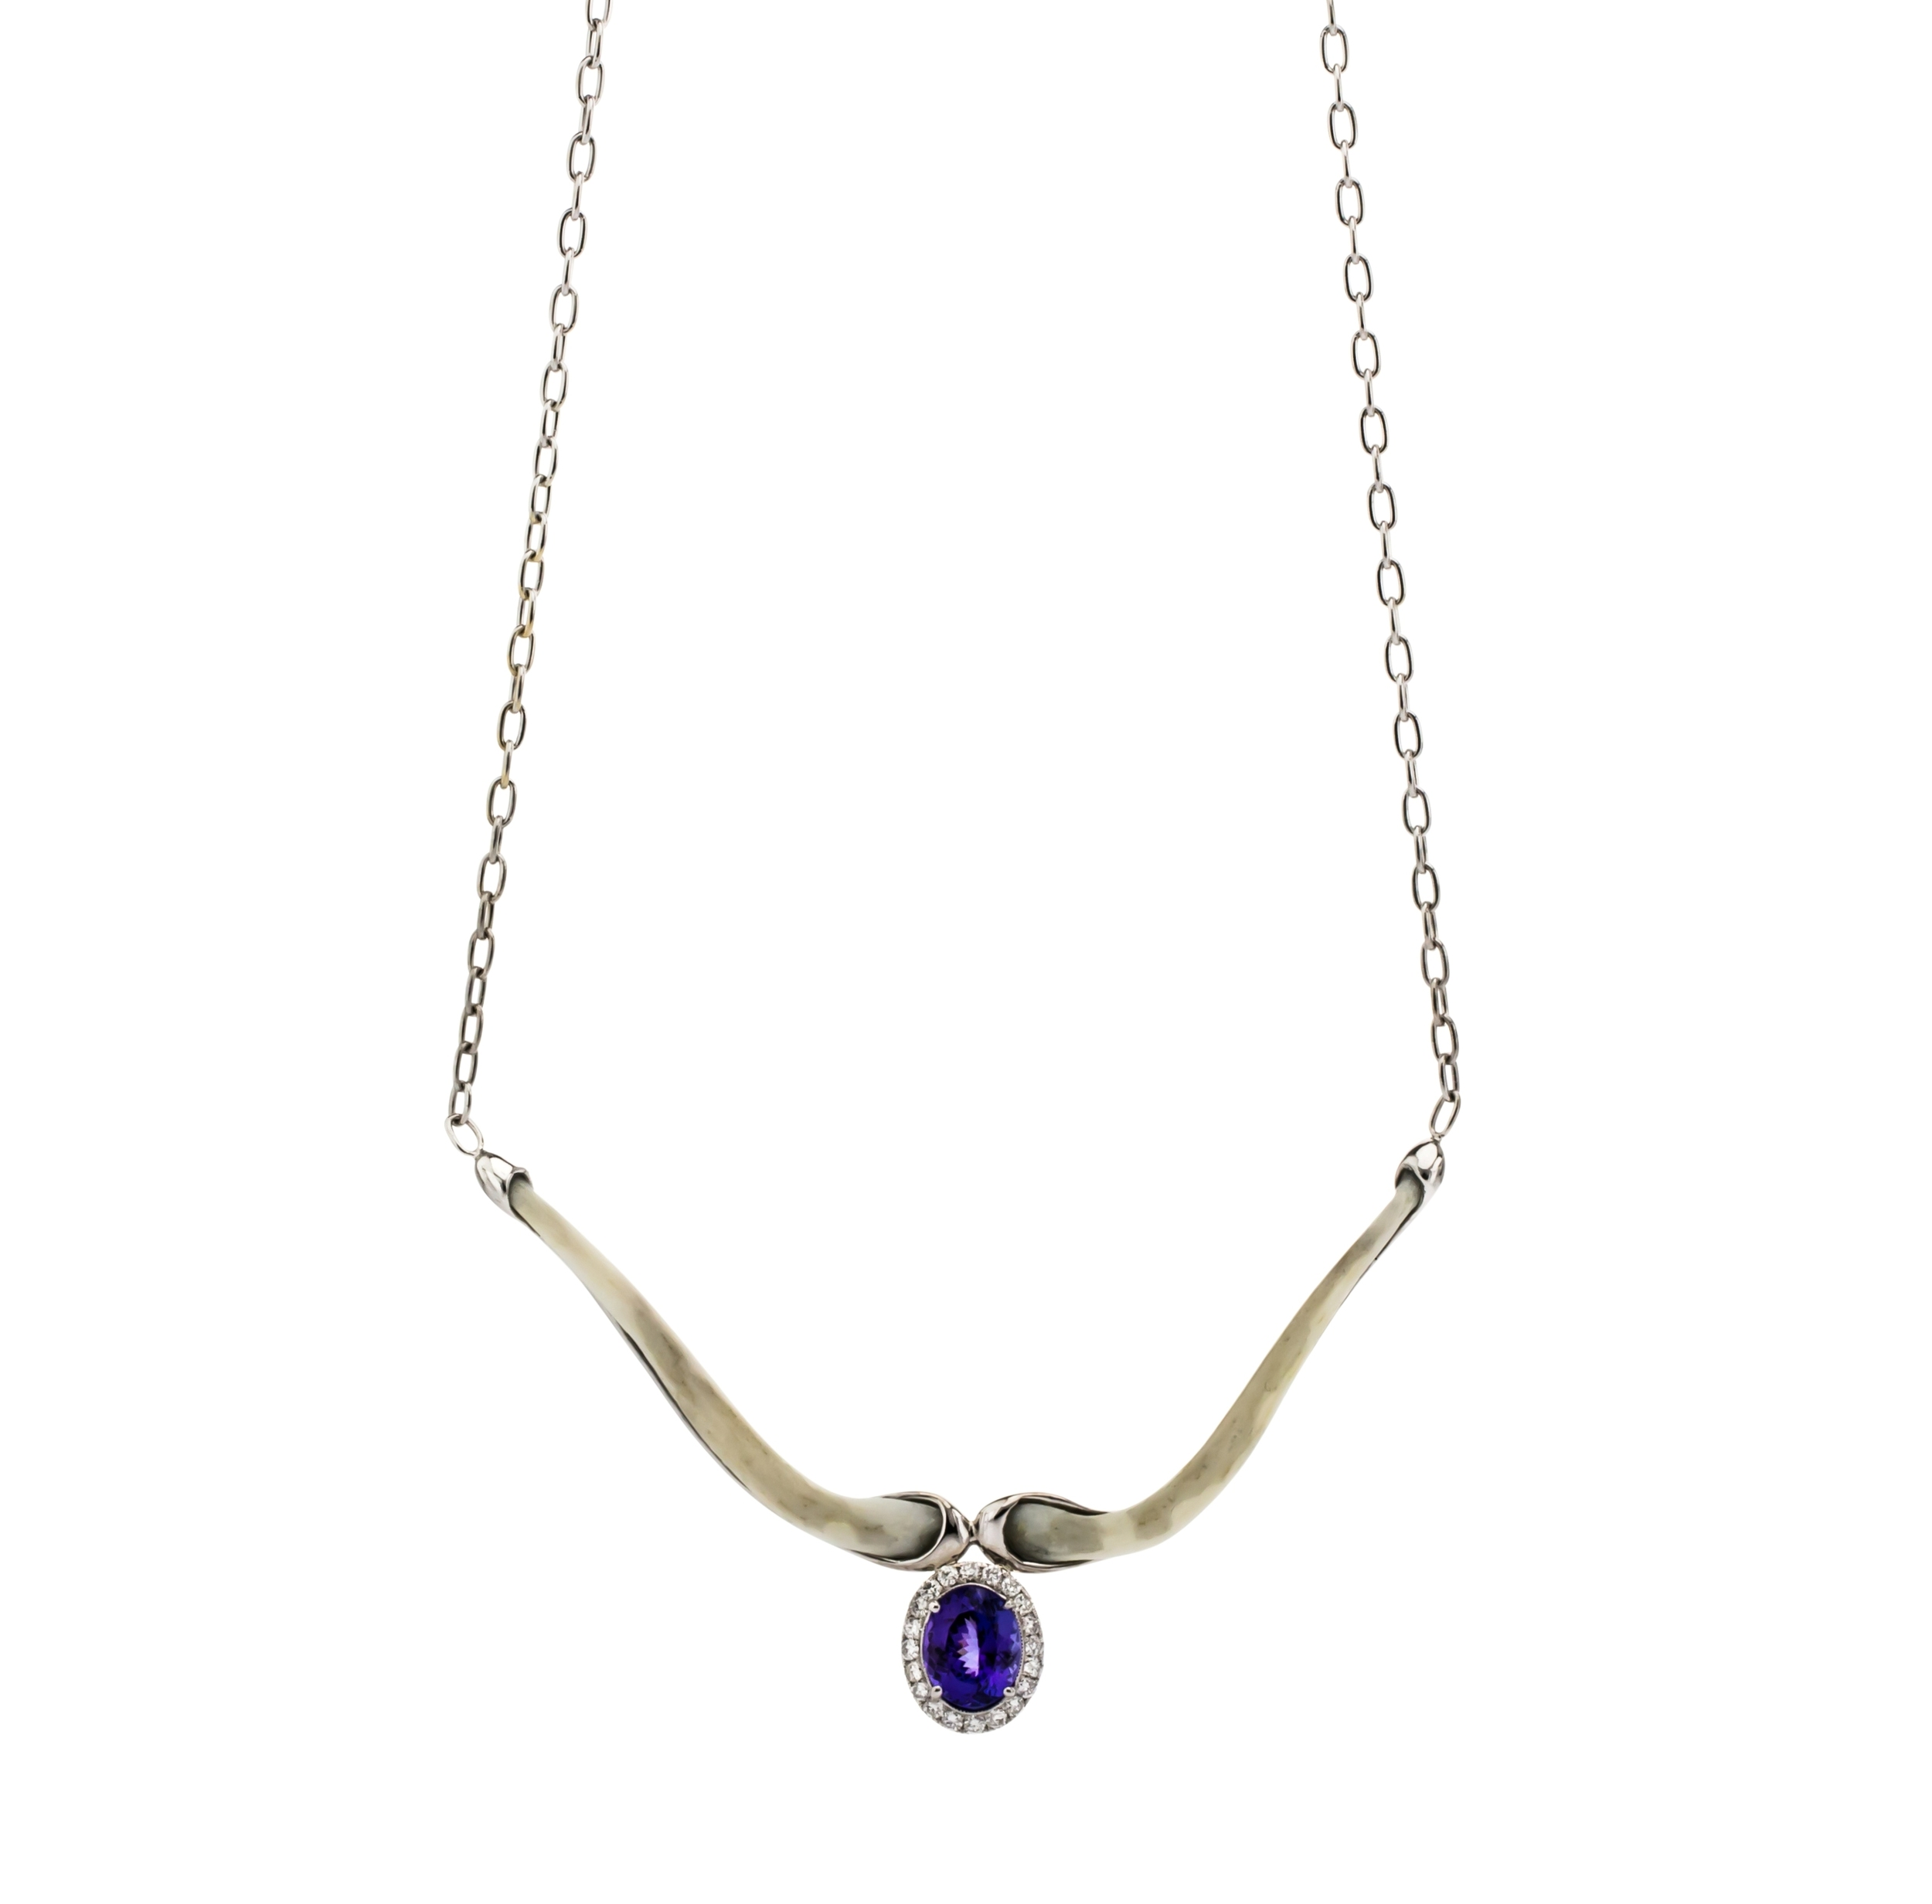 CUSTOM TANZANITE AND DIAMOND FLOATING BONE NECKLACE